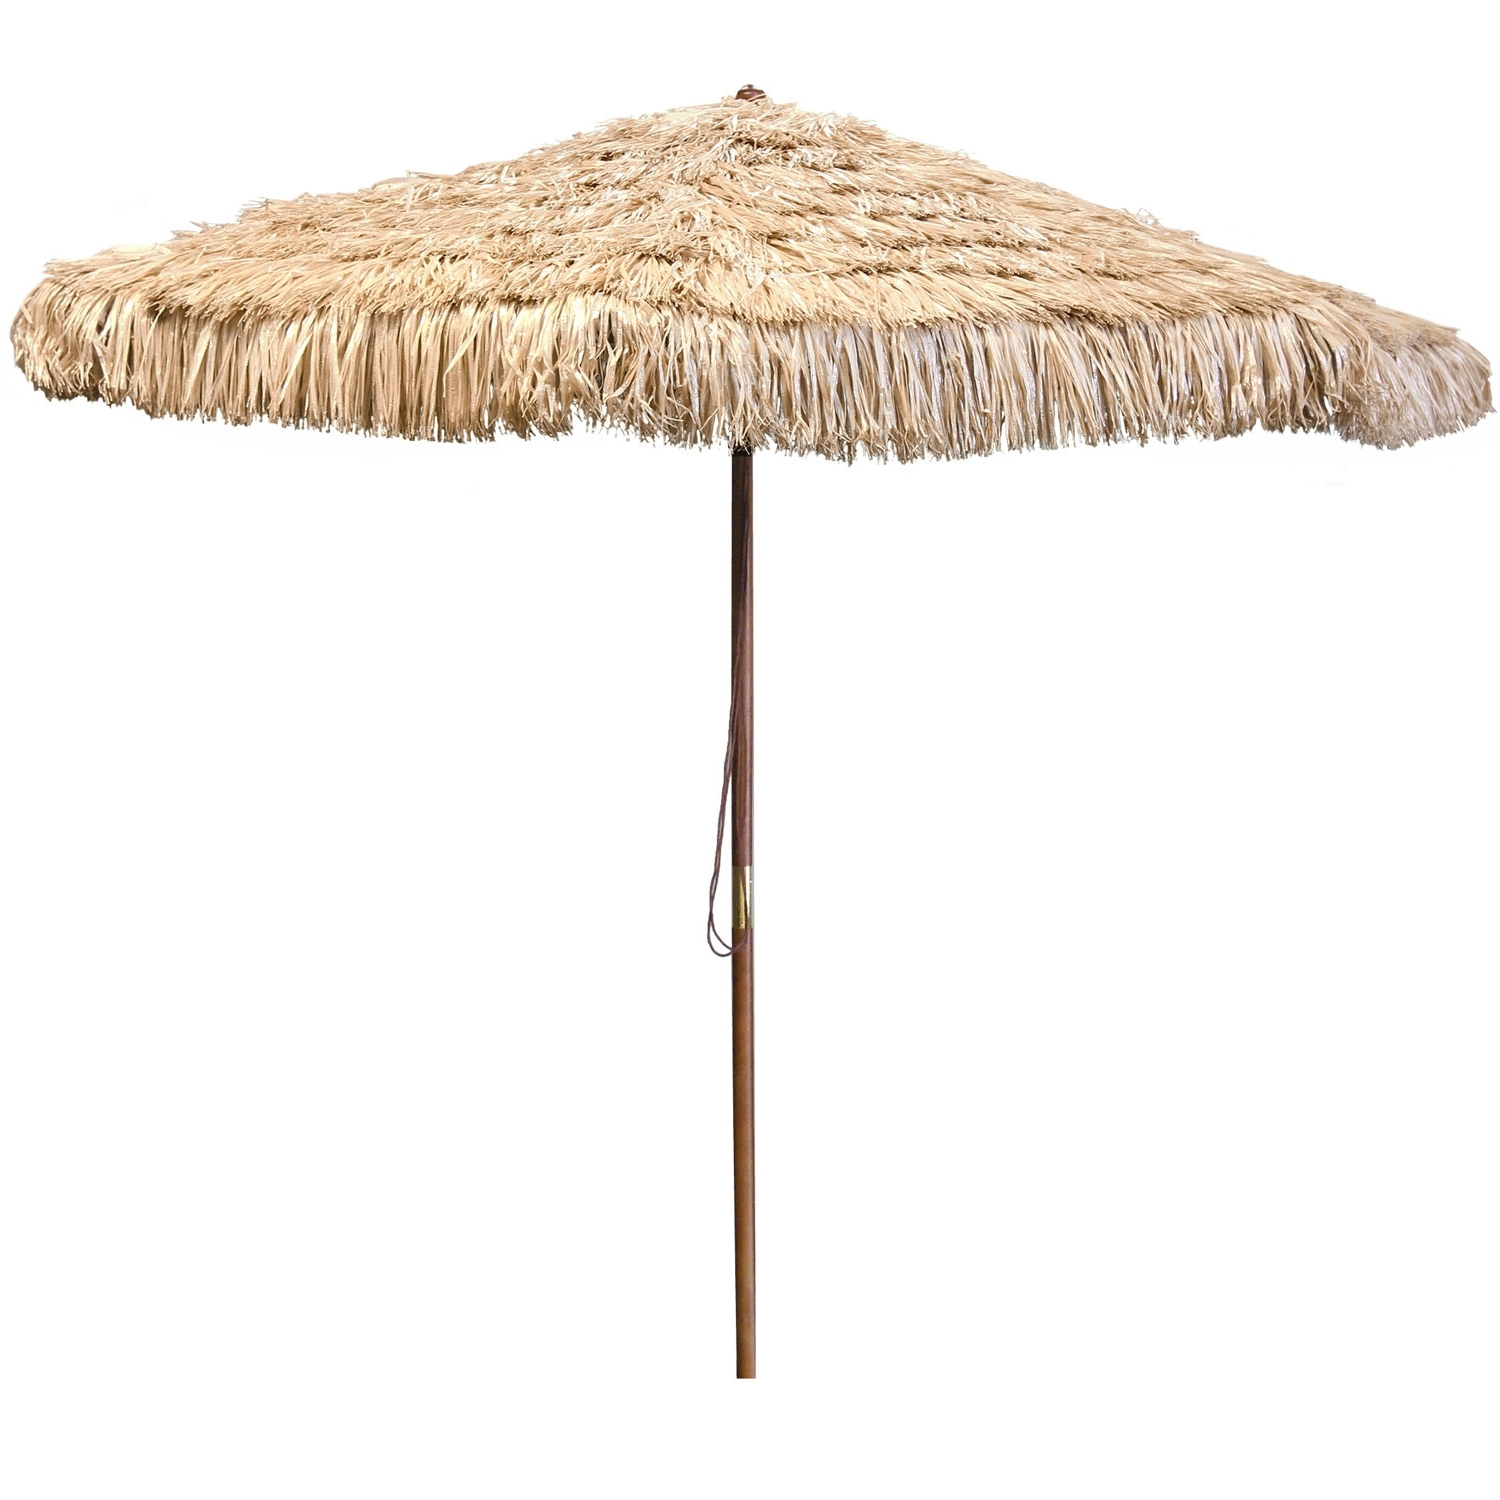 Jordan Manufacturing Company Natural Wooden Hula Umbrella Ump903 Pertaining To Widely Used Jordan Patio Umbrellas (View 15 of 20)